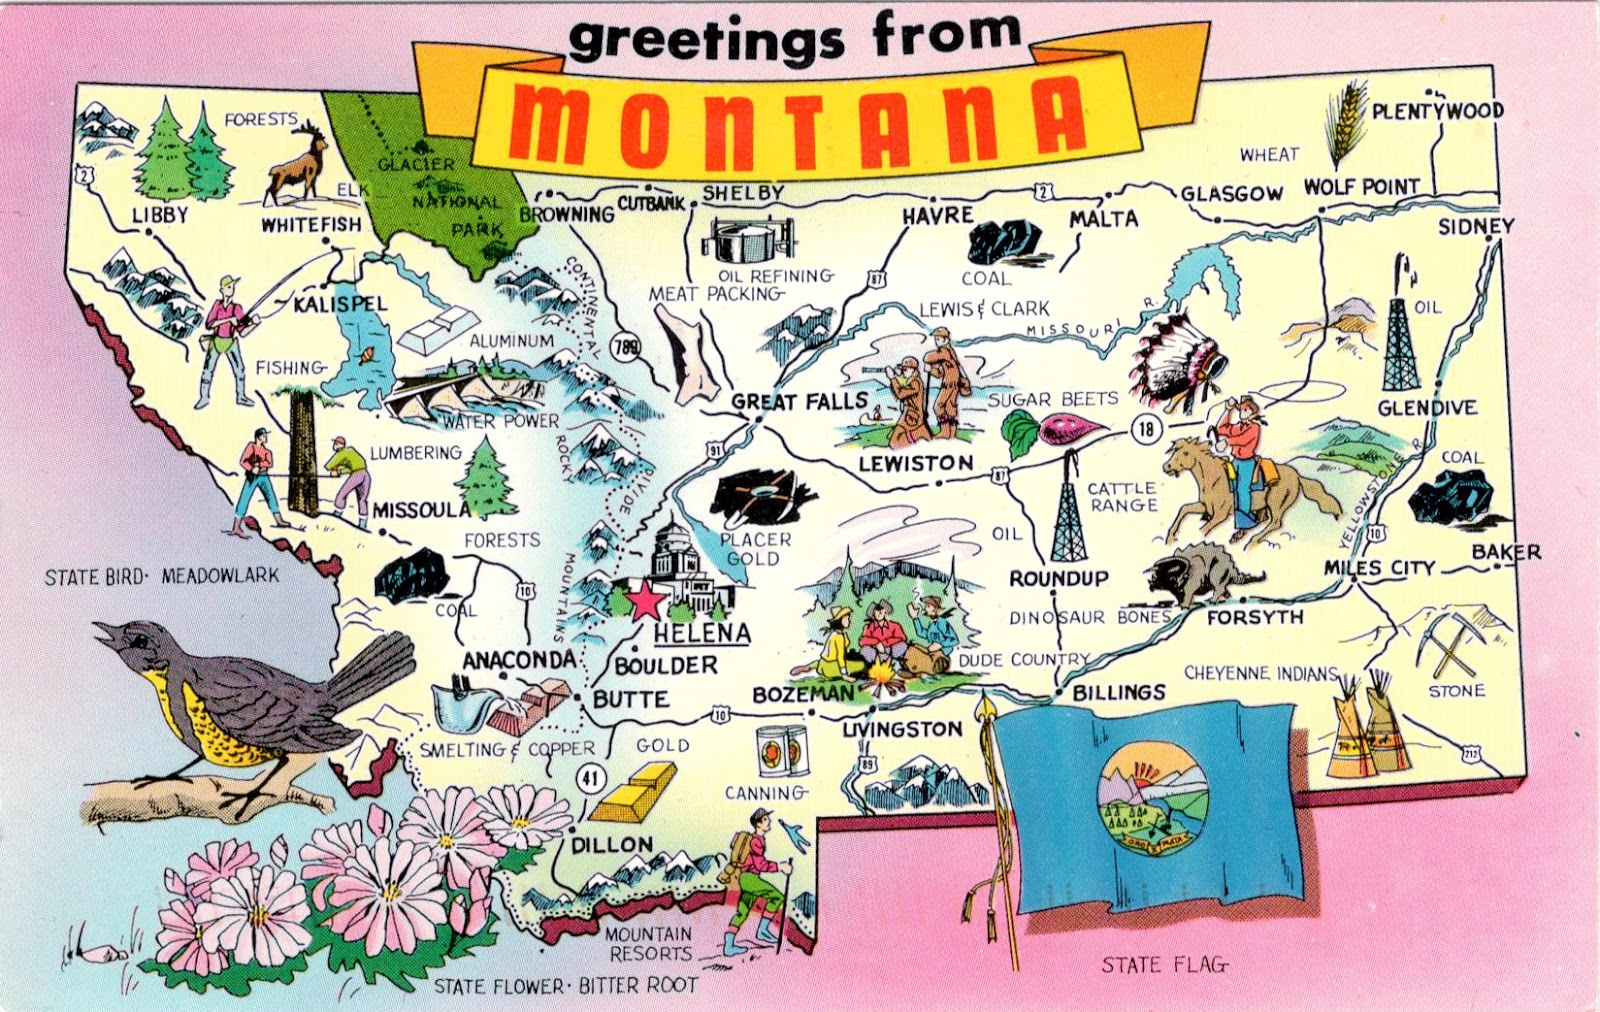 Montana Ipl Stately Knowledge Facts About The United States - Montana us map